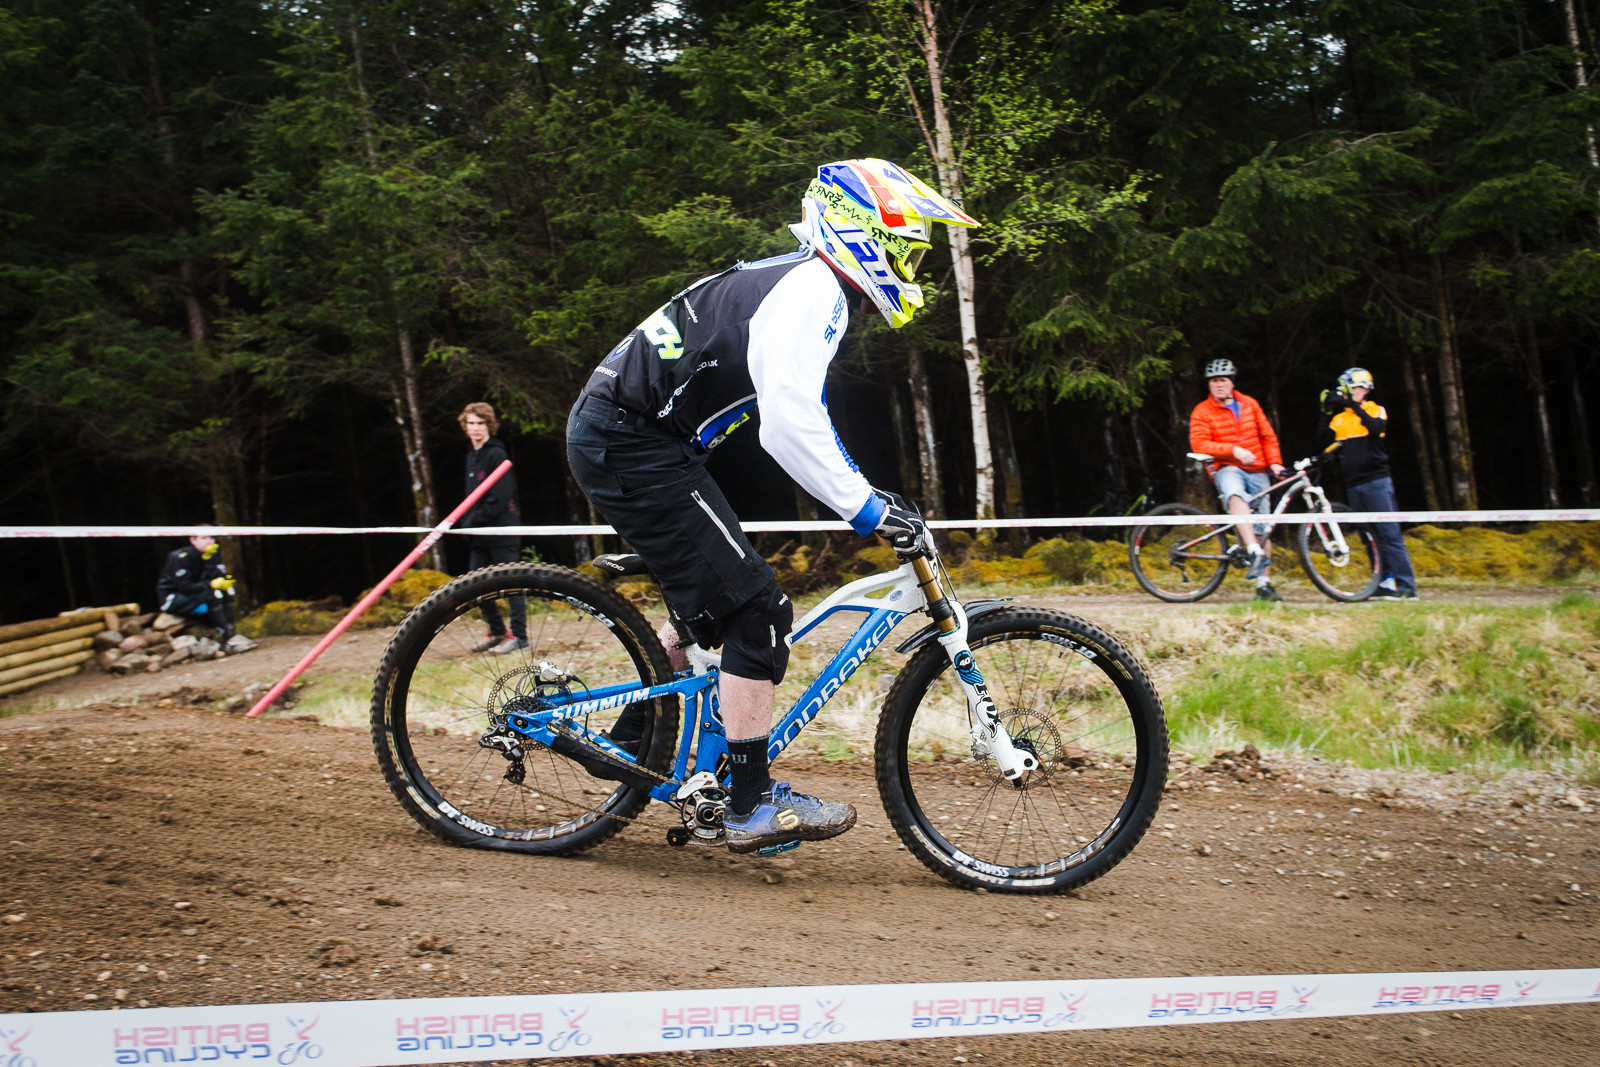 G-Out Fort William - Mondraker Summum - G-Out Project - Fort William BDS 2015 - Mountain Biking Pictures - Vital MTB